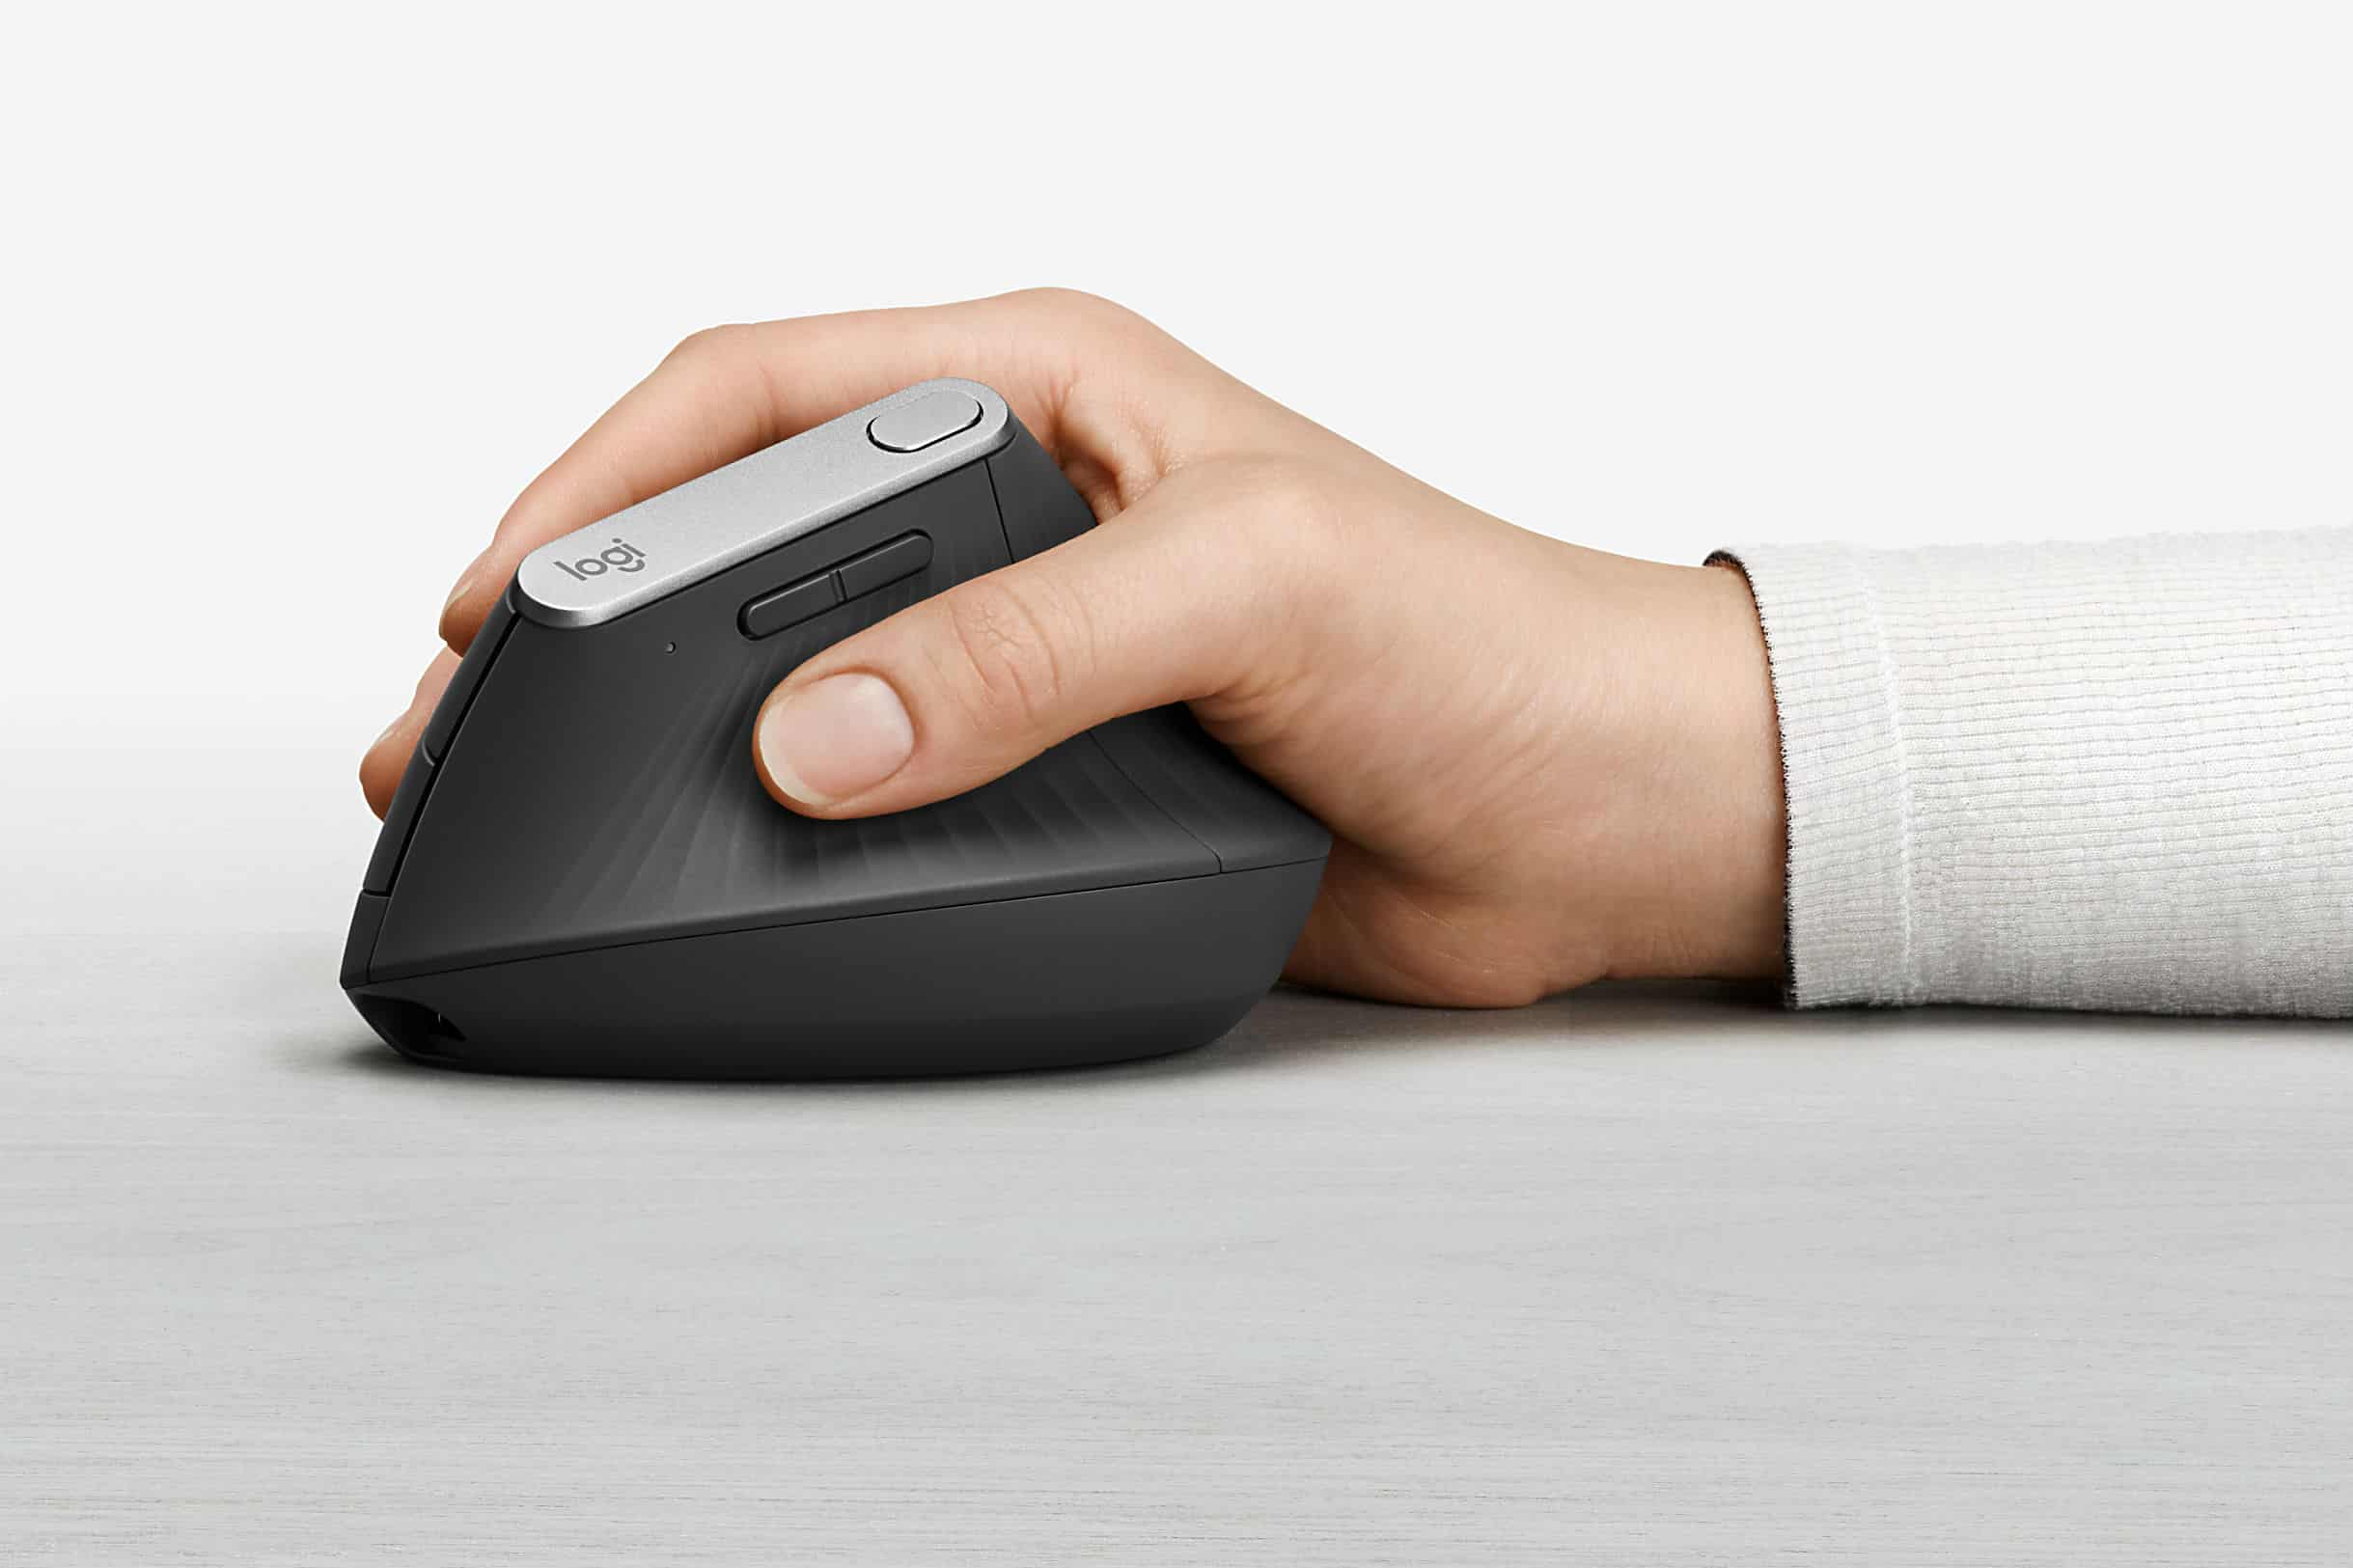 The Logitech MX Vertical ergonomic mouse is here to save your wrist.